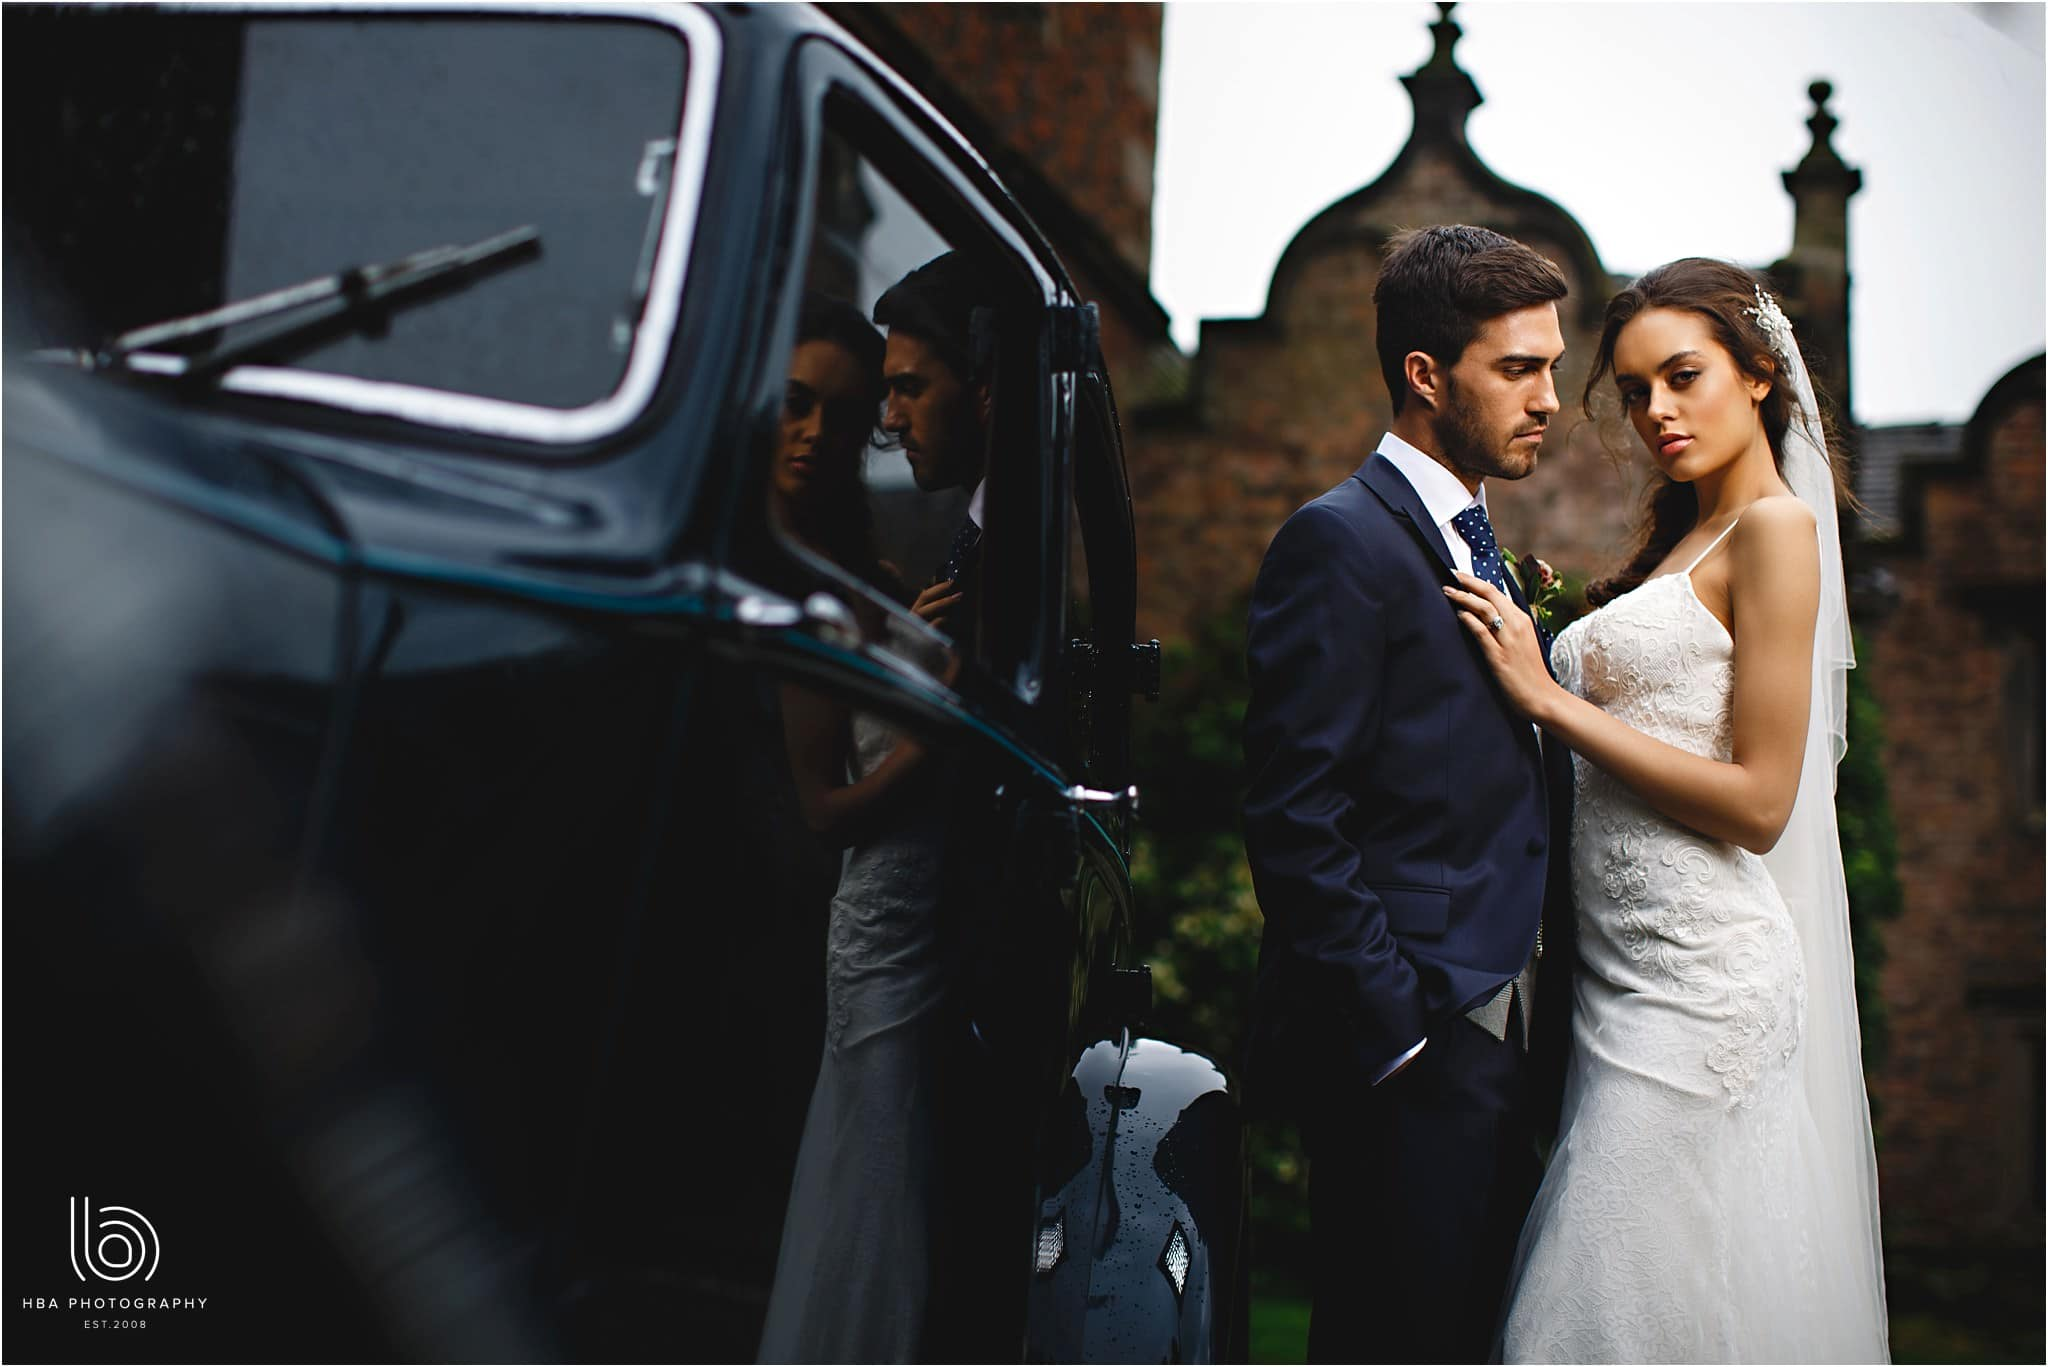 the bride and groom stood by the wedding car at Dorfold Hall